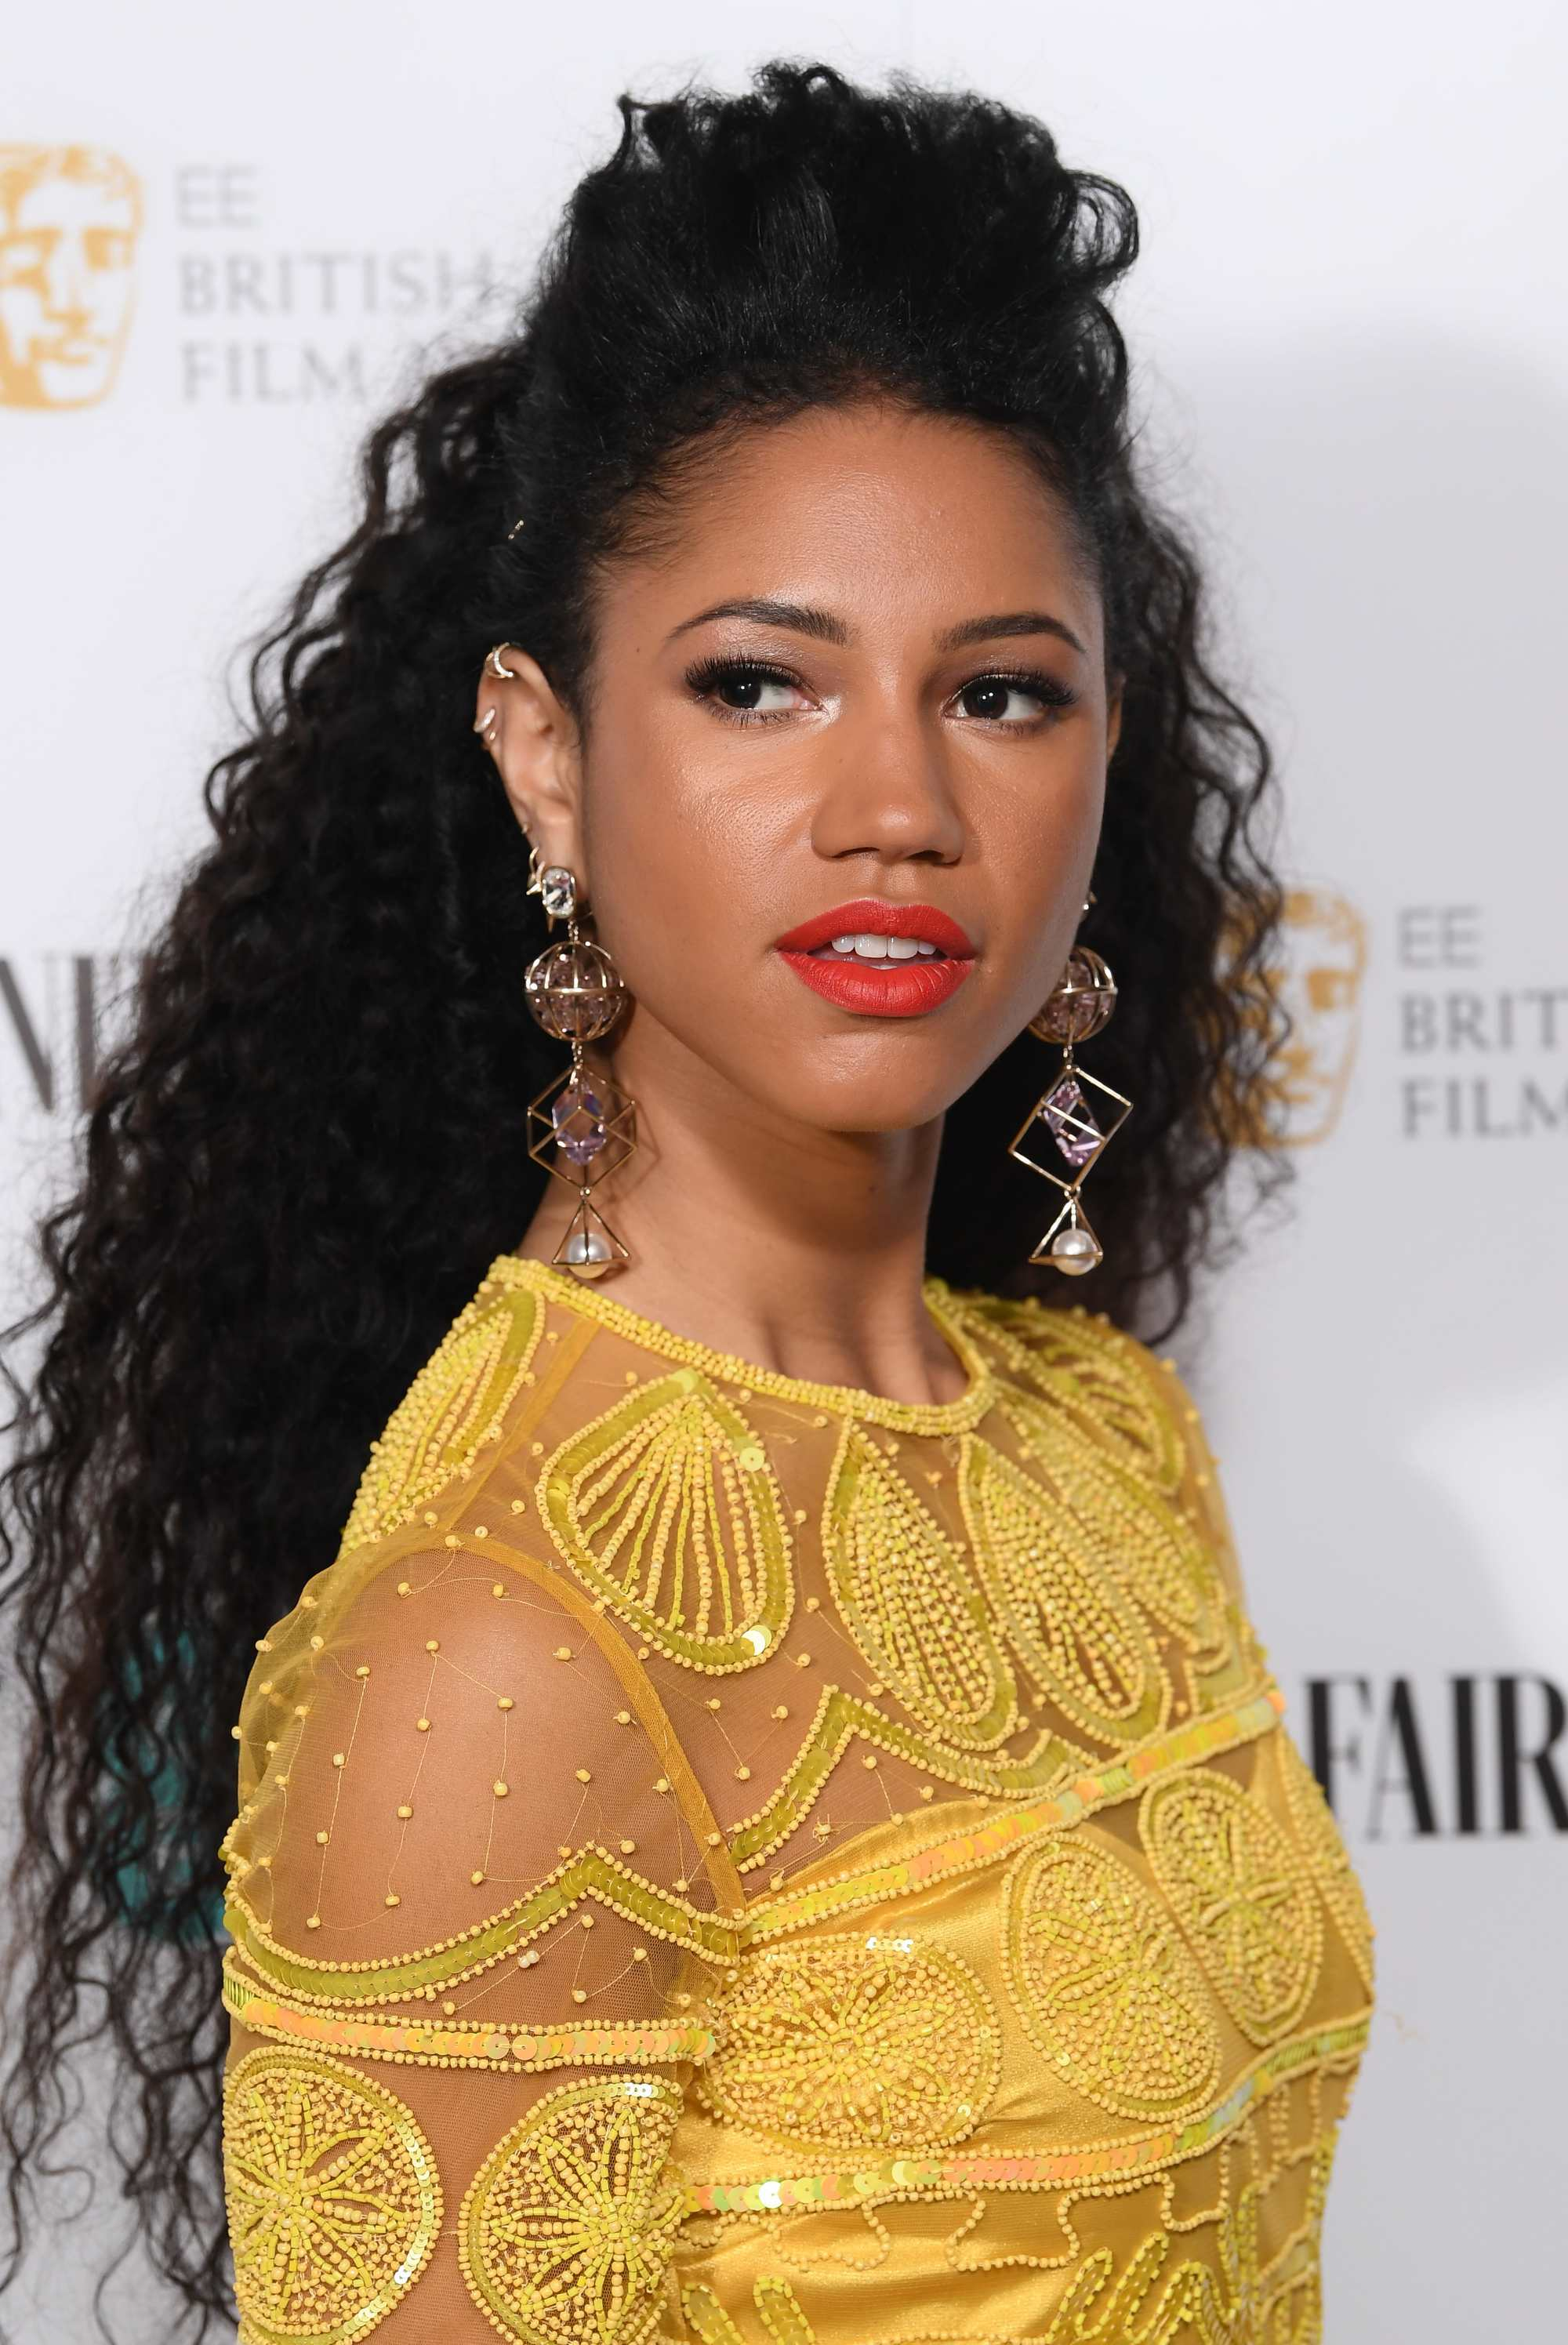 Celebrity Valentine's Day Hair: Side shot of Vick Hope with long dark brown curls styled into a half-up, half-down bun, wearing a yellow lace dress with swanky earrings on the red carpet